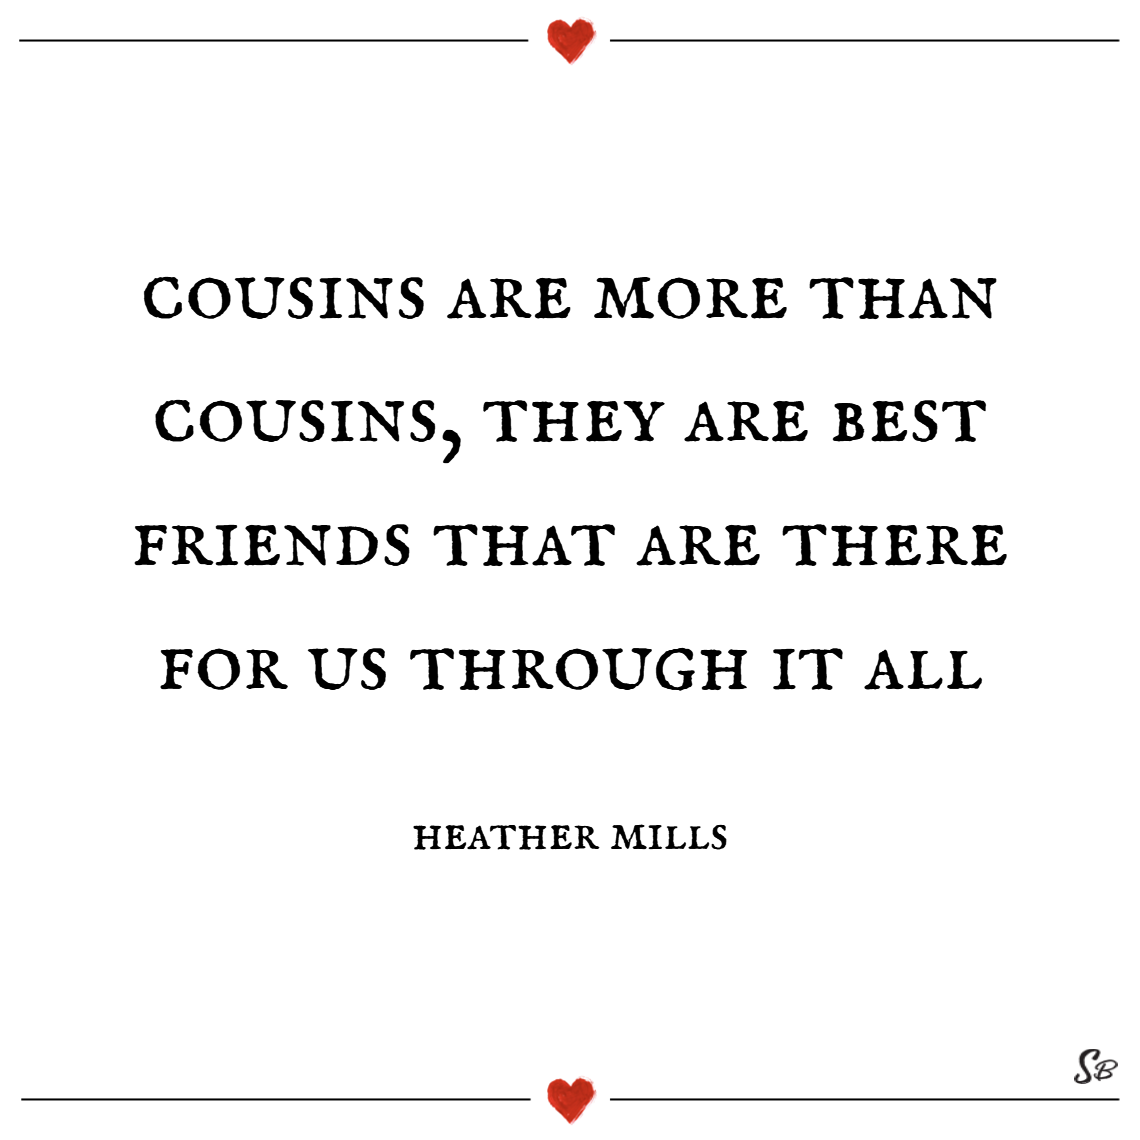 Cousins are more than cousins, they are best friends that are there for us through it all. – heather mills